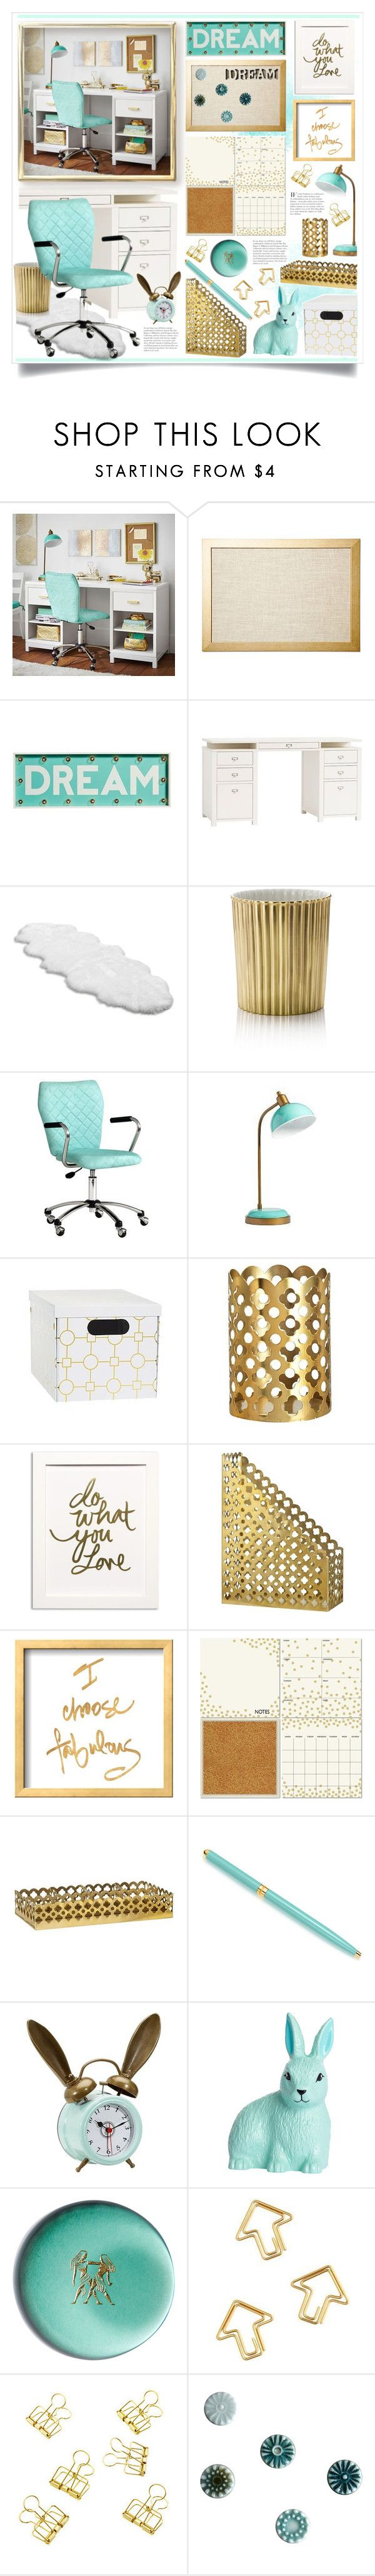 """Home Office Decor"" by hmb213 on Polyvore featuring interior, interiors, interior design, home, home decor, interior decorating, PBteen, LG Designs, UGG Australia and Villari"